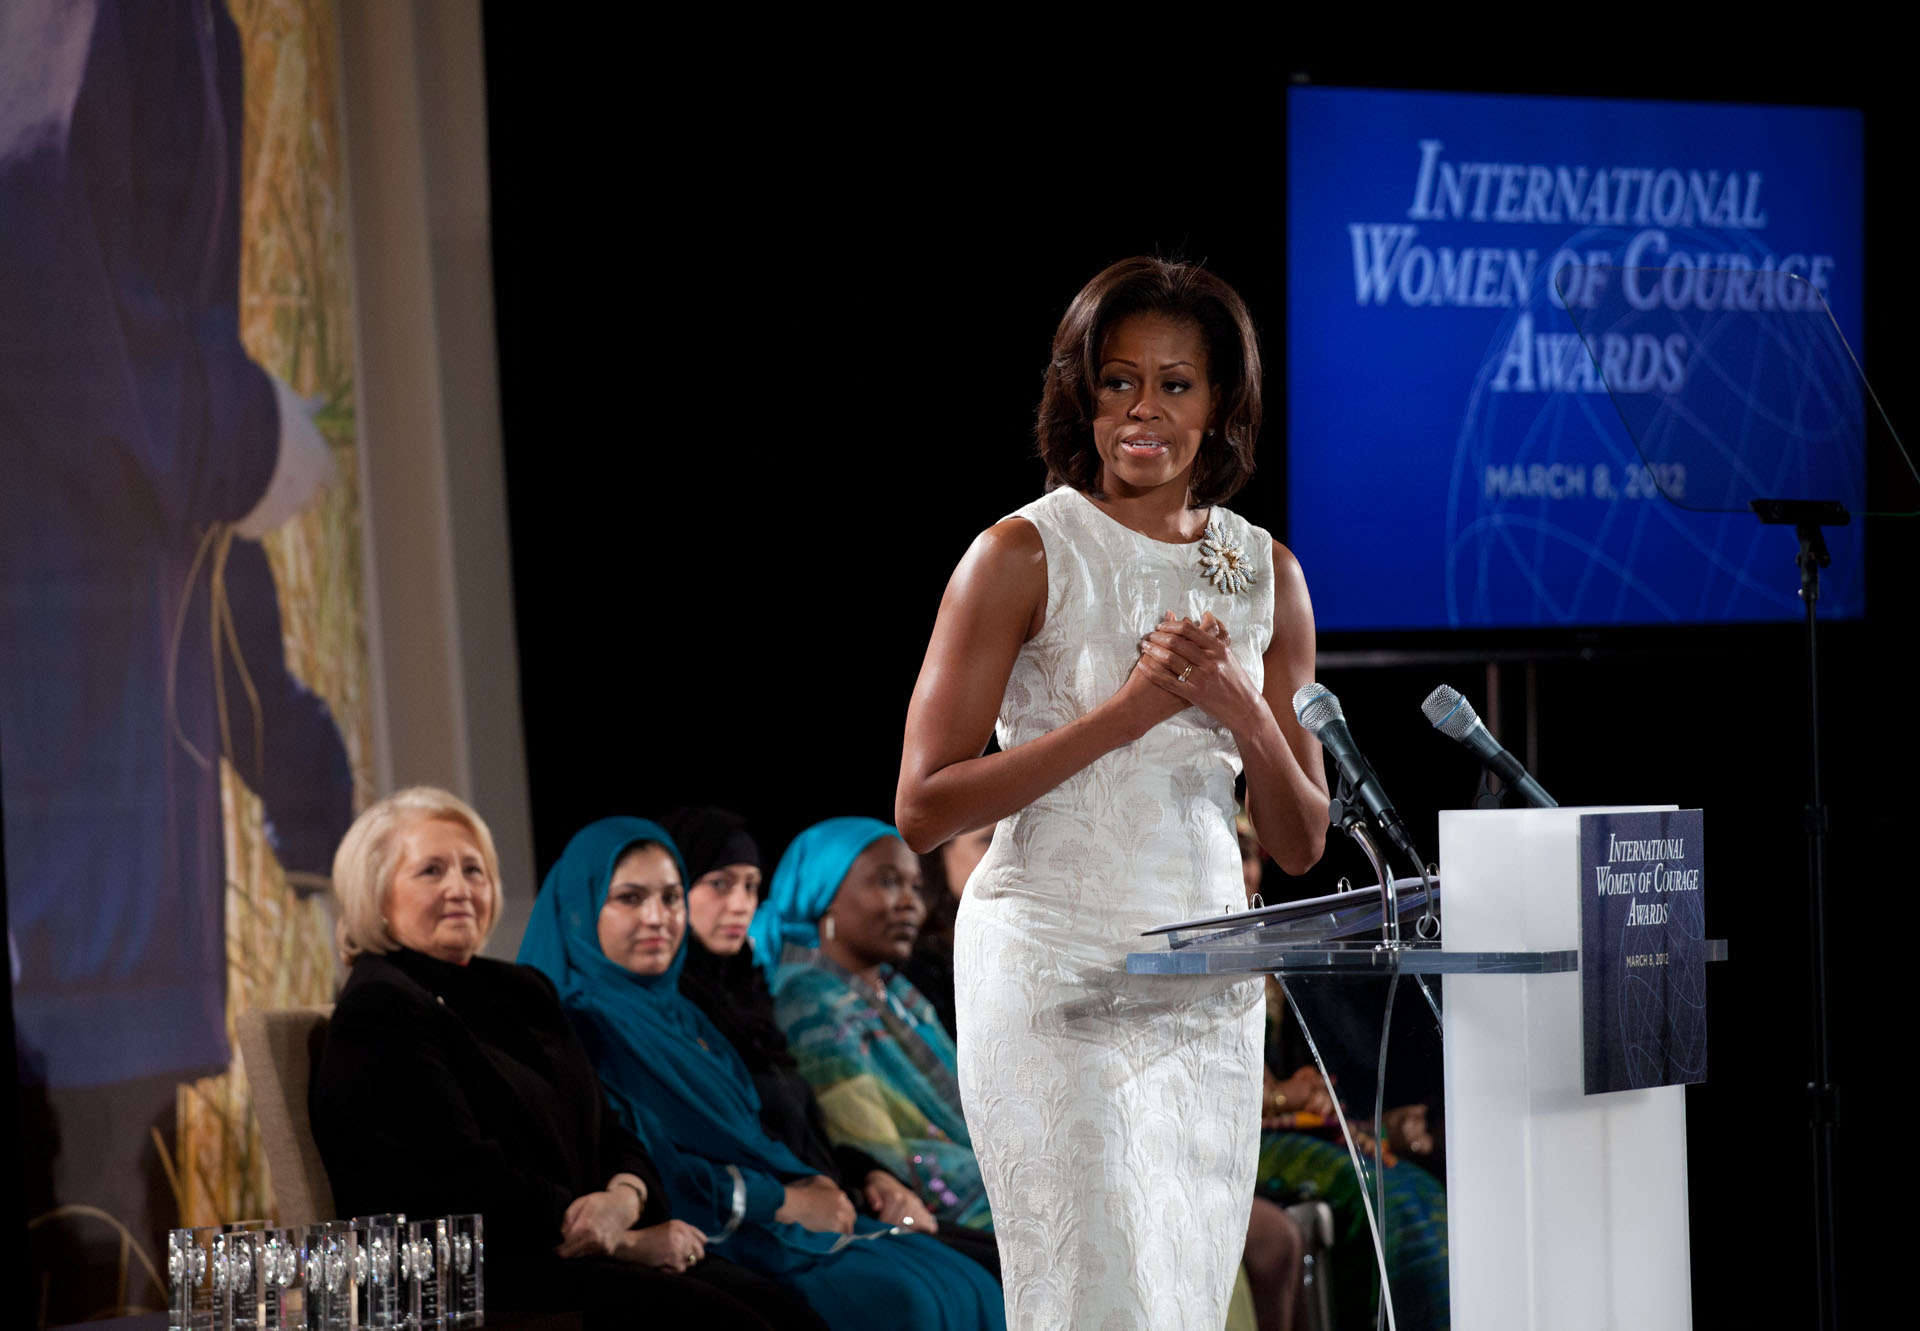 First Lady Michelle Obama at the International Women of Courage Awards